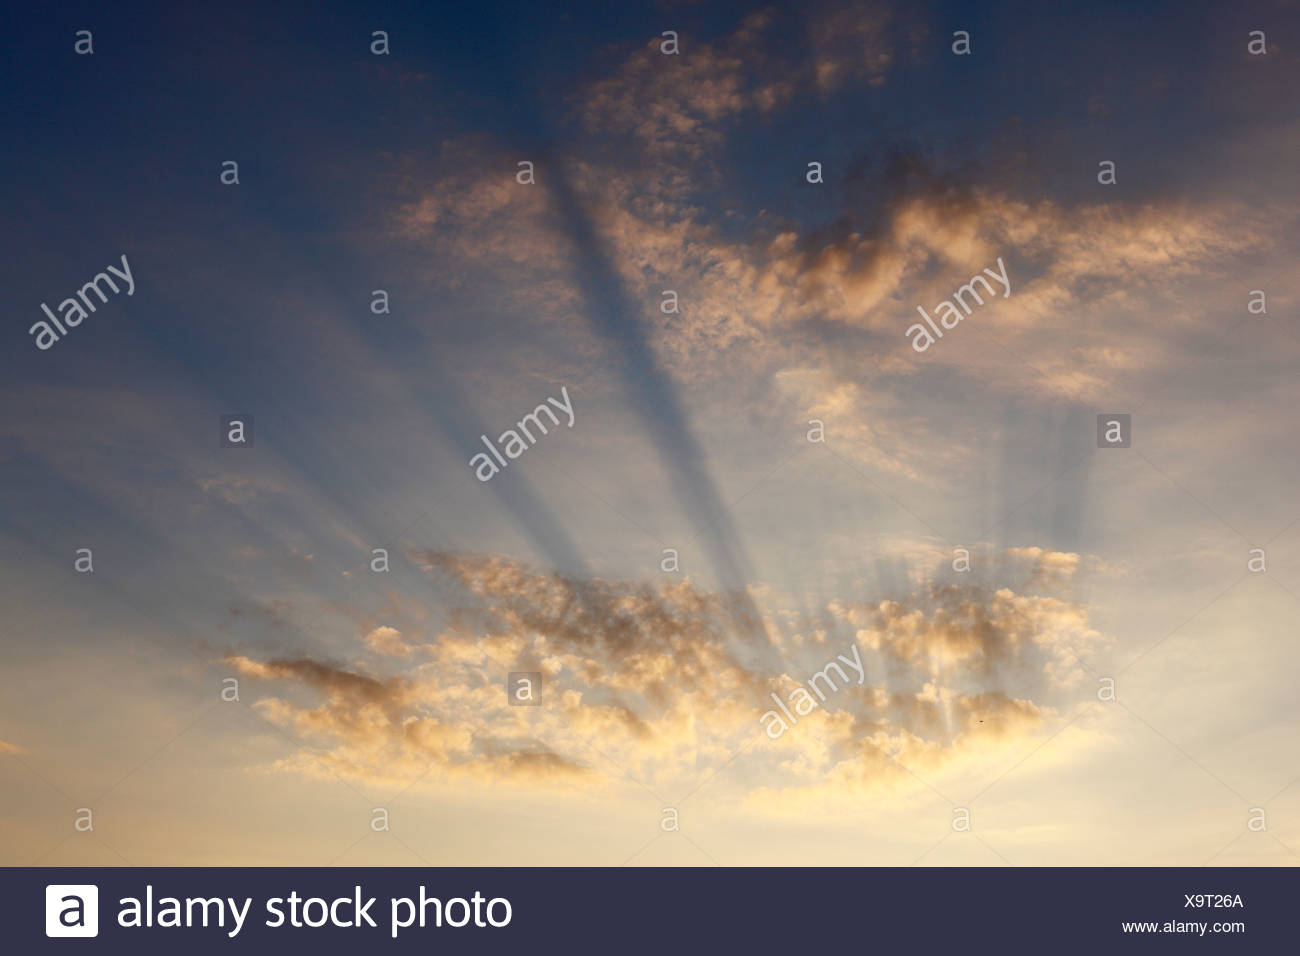 Sun rays in the cloudy sky, Ireland, Europe - Stock Image